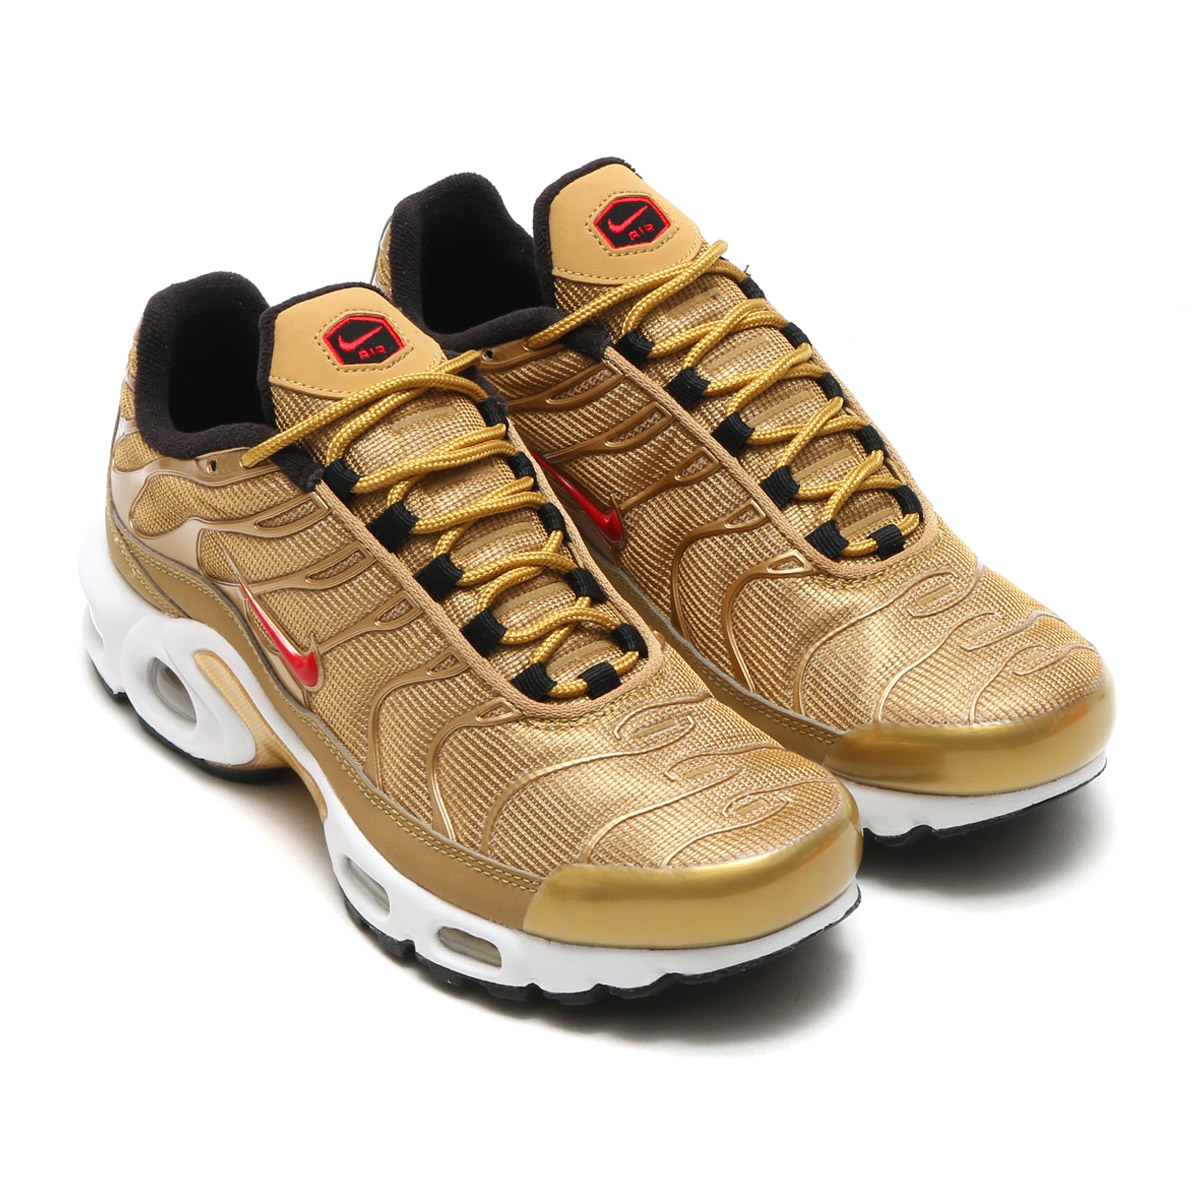 NIKE WMNS AIR MAX PLUS QS (나이키 womens 에어 막스 플러스 QS) (METALLIC GOLD/UNIVERSITY RED) 17 SU-S